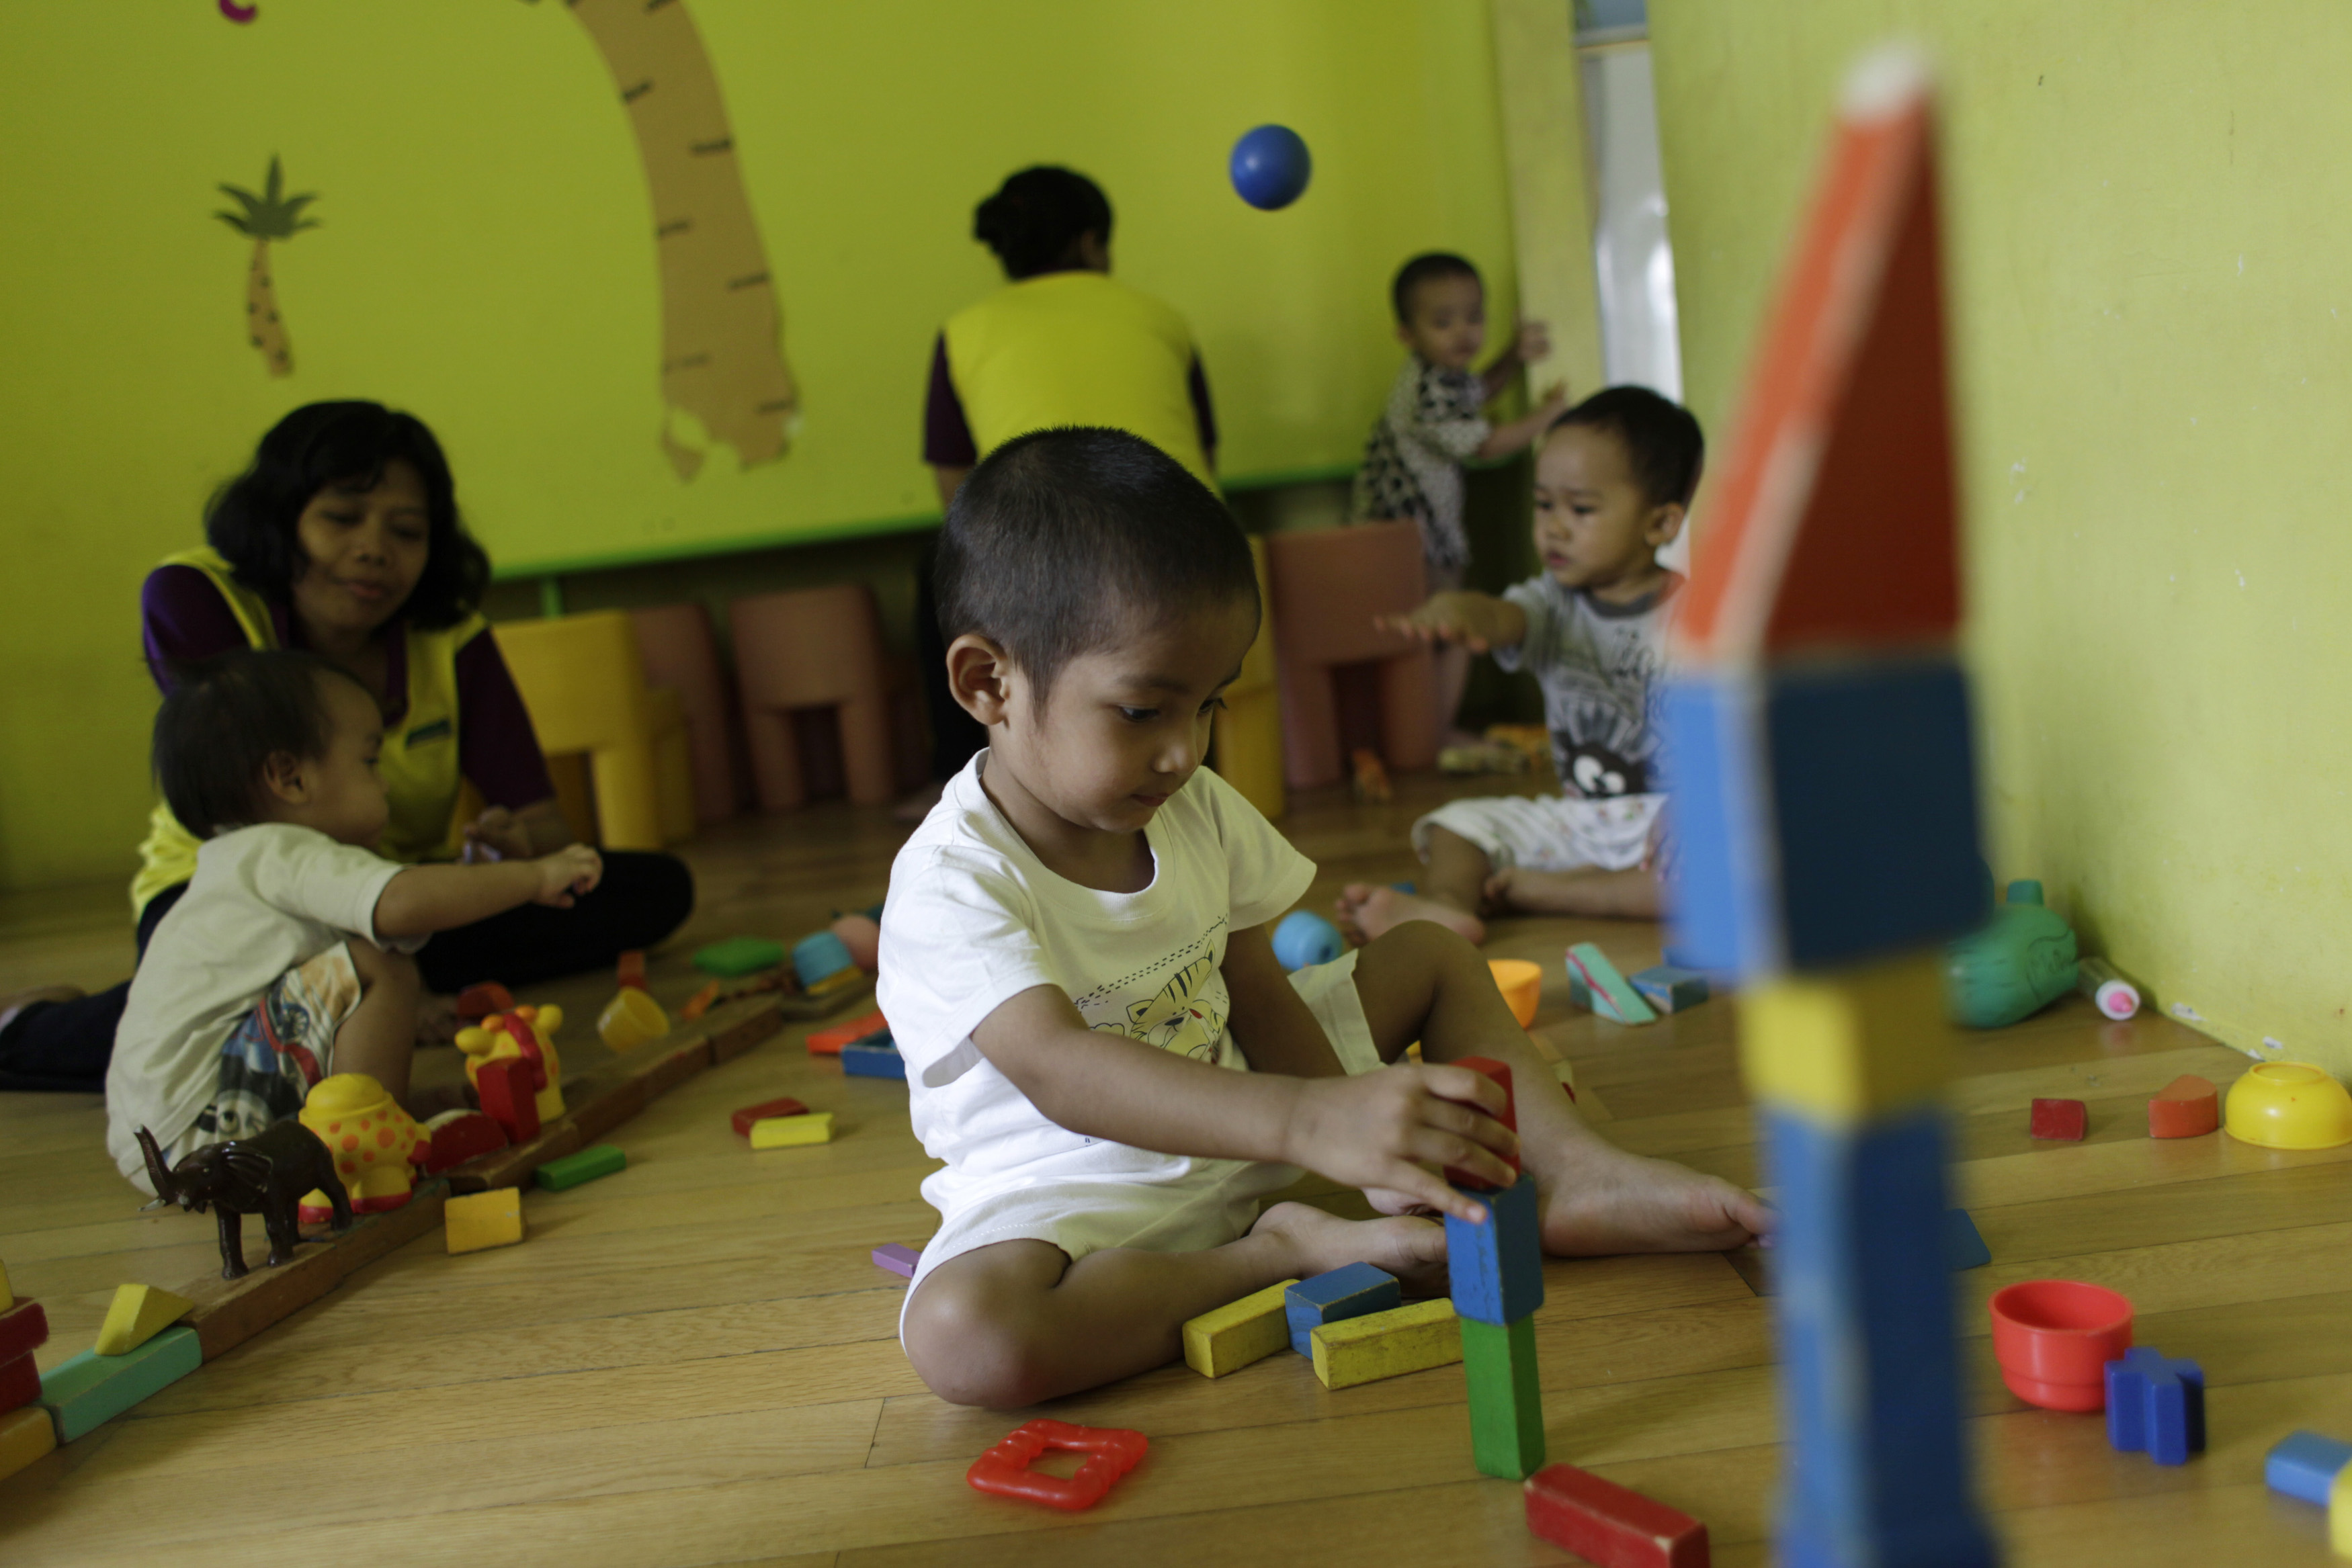 Children play at Keen Kids daycare in Jakarta August 2, 2012. With more and more women going out to work due to more education and middle-class aspirations daycare has become essential for residents of urban Jakarta, much the way it has in the rest of the developed world. Picture taken August 2, 2012. To match story INDONESIA-DAYCARE/   REUTERS/Beawiharta (INDONESIA - Tags: SOCIETY BUSINESS EMPLOYMENT EDUCATION) - RTR3A3M4